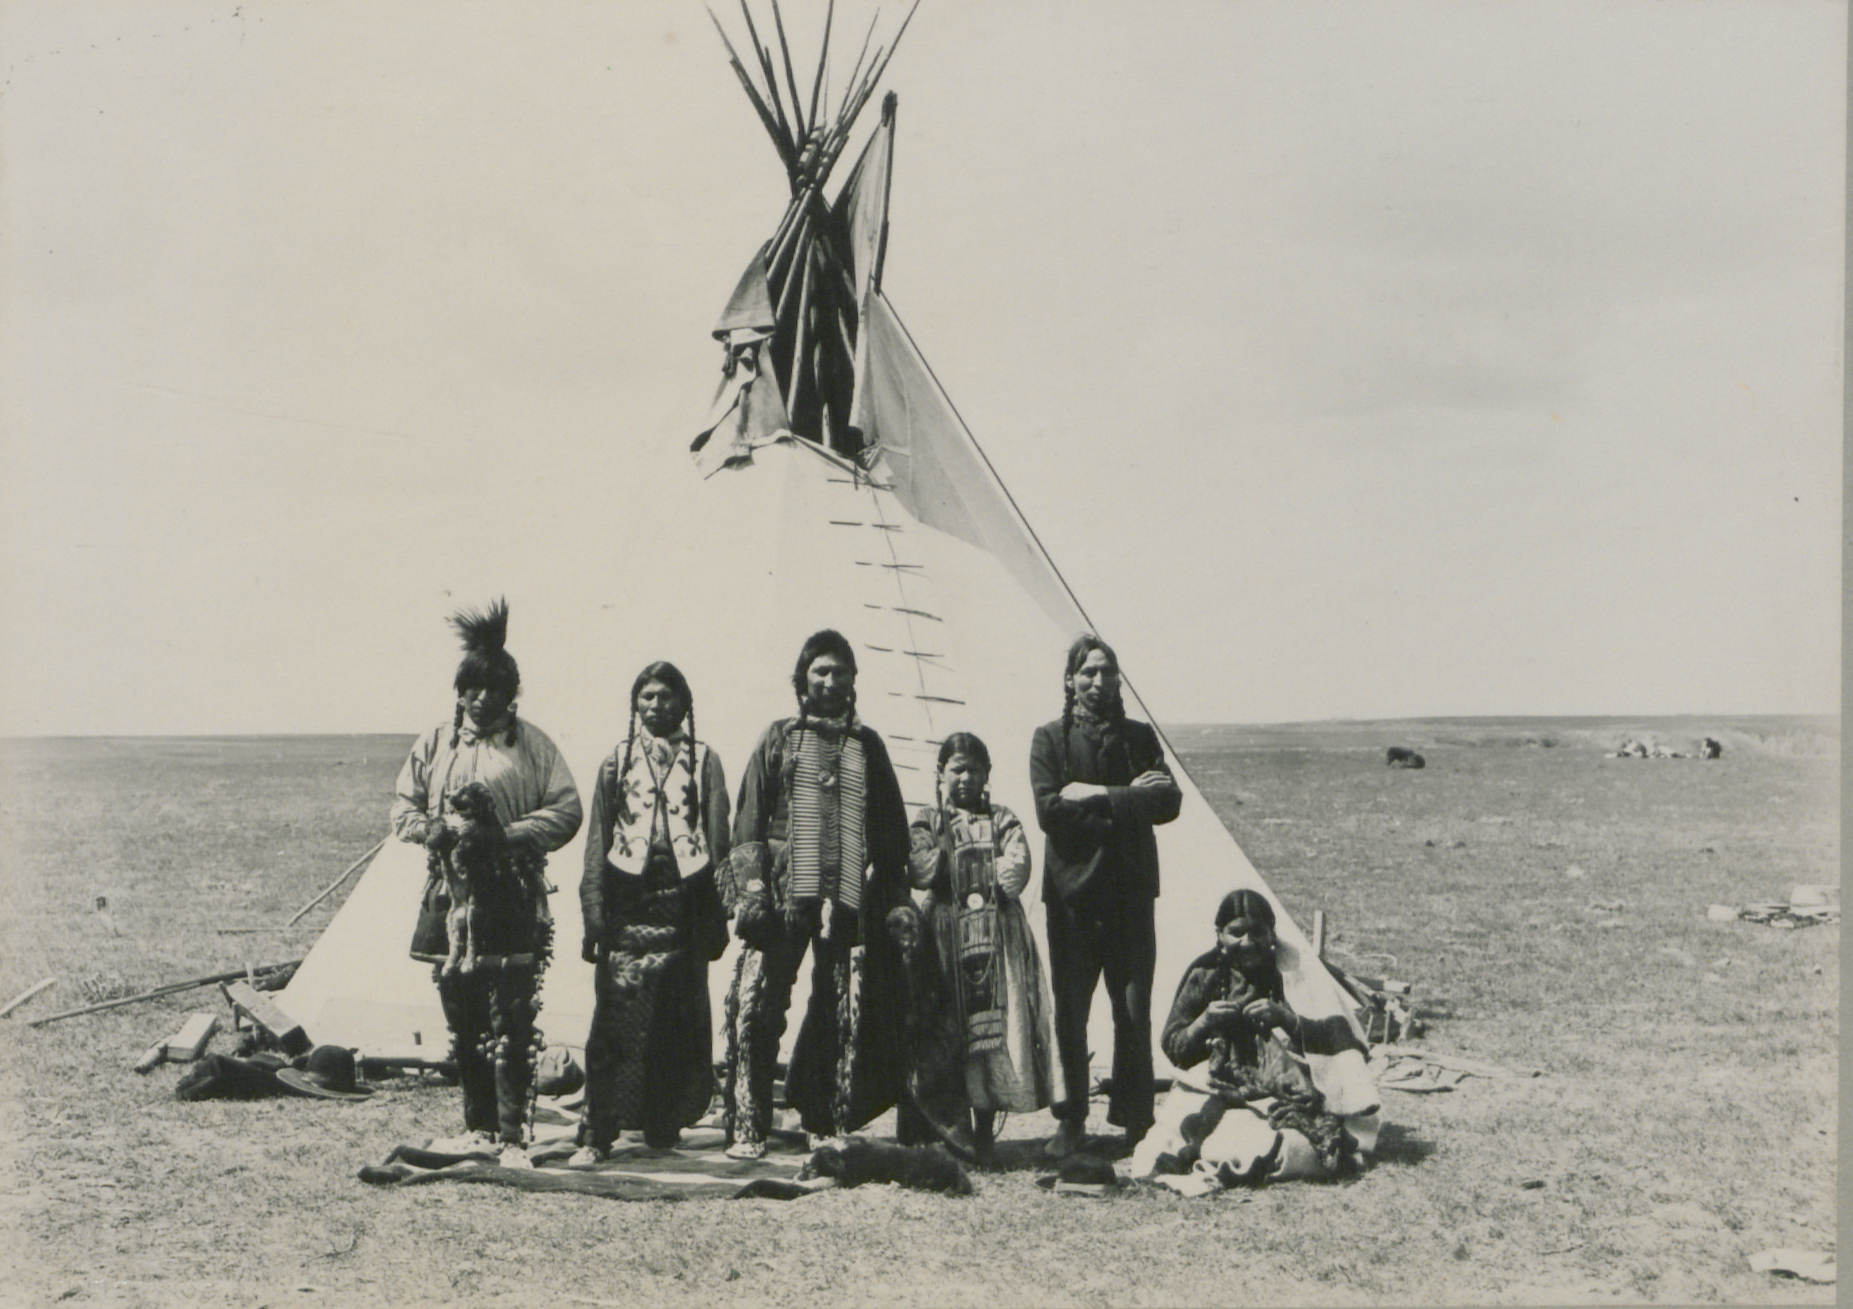 an introduction to the cree a group of native american people Ap® united states history: white-native american contact in early american history 2008 editor's introduction american history with native people at its center before the end of his life.